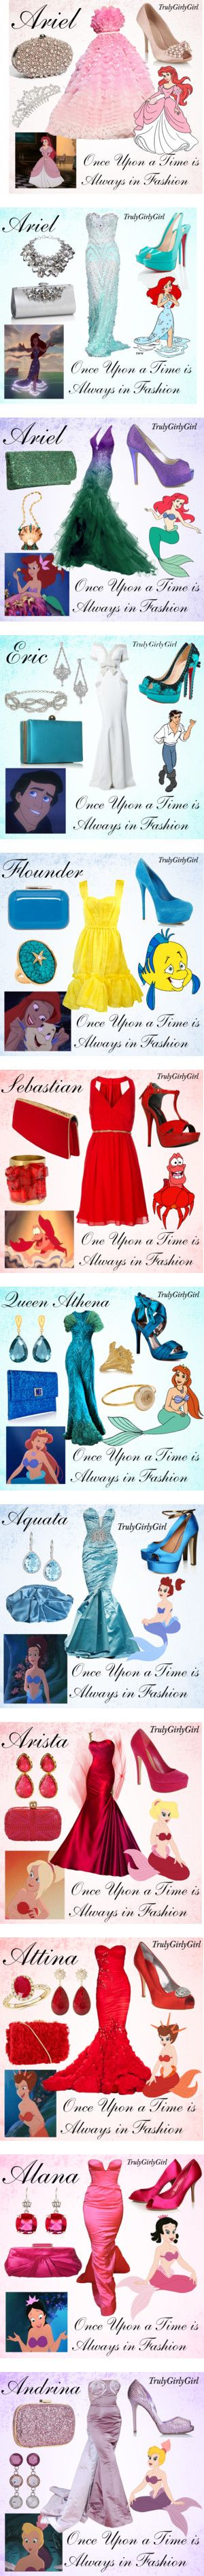 """Disney Style: The Little Mermaid"" by trulygirlygirl ❤ liked on Polyvore"